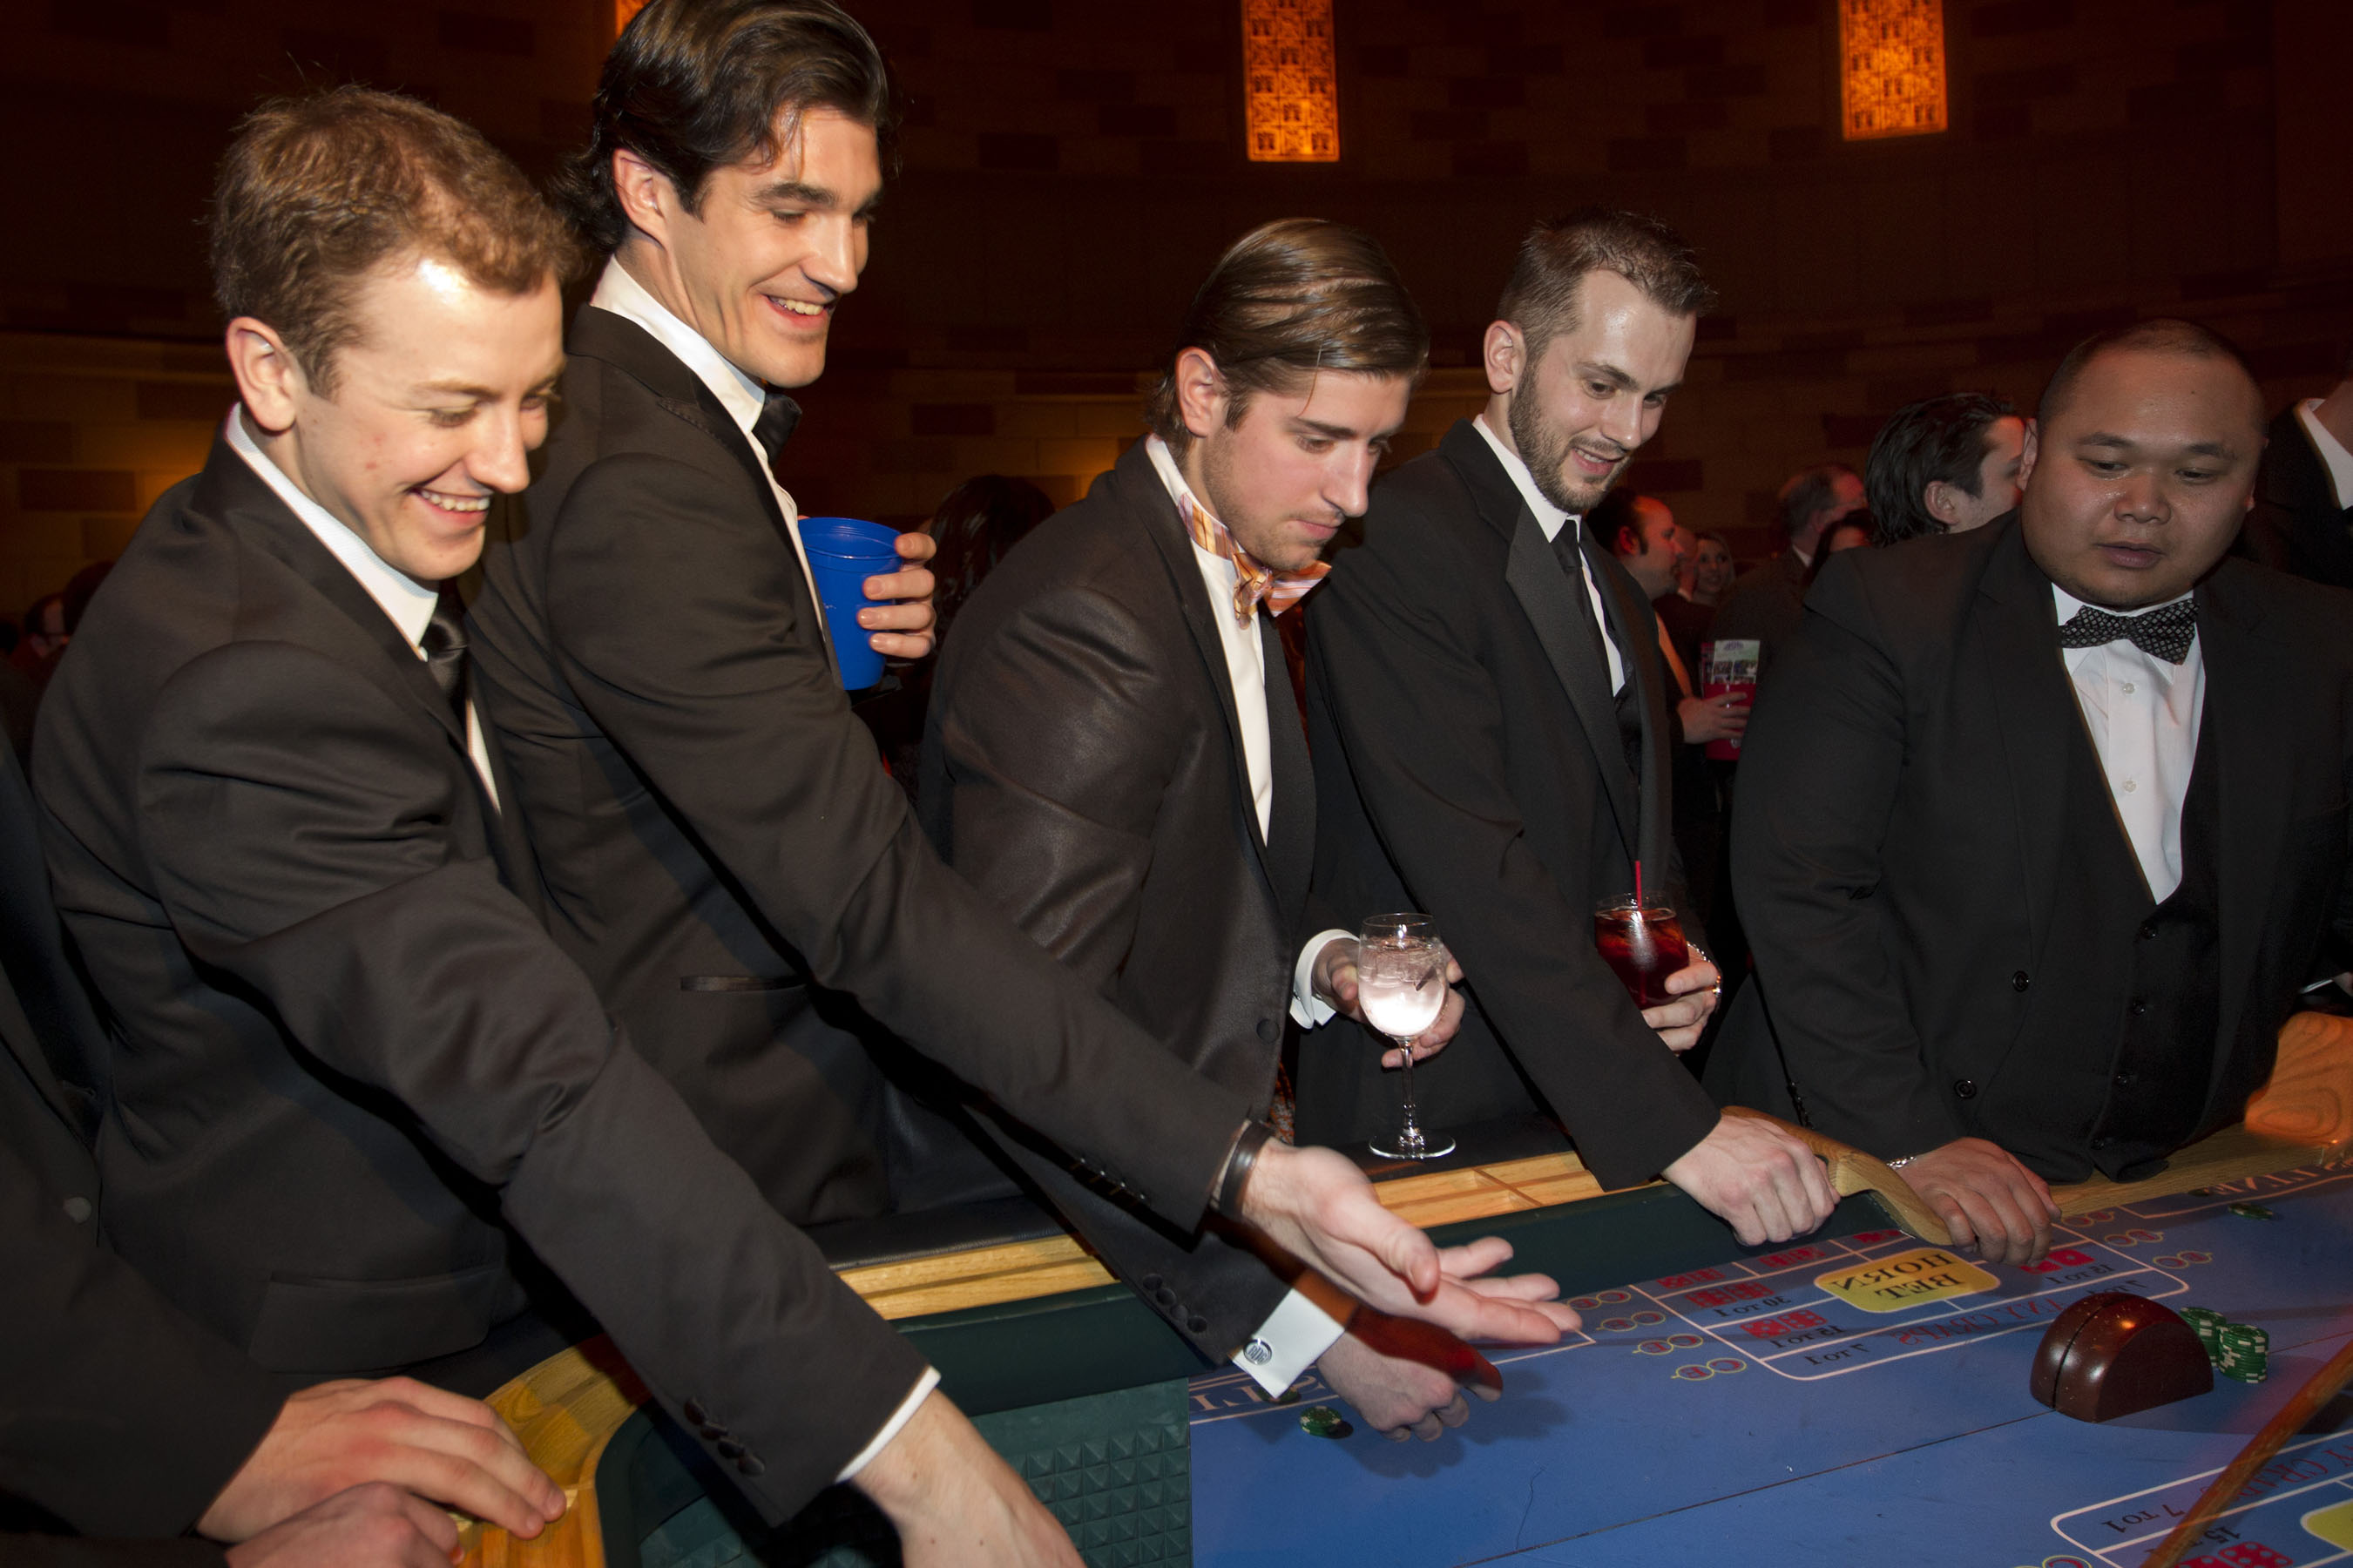 Rangers Casino Night 2011